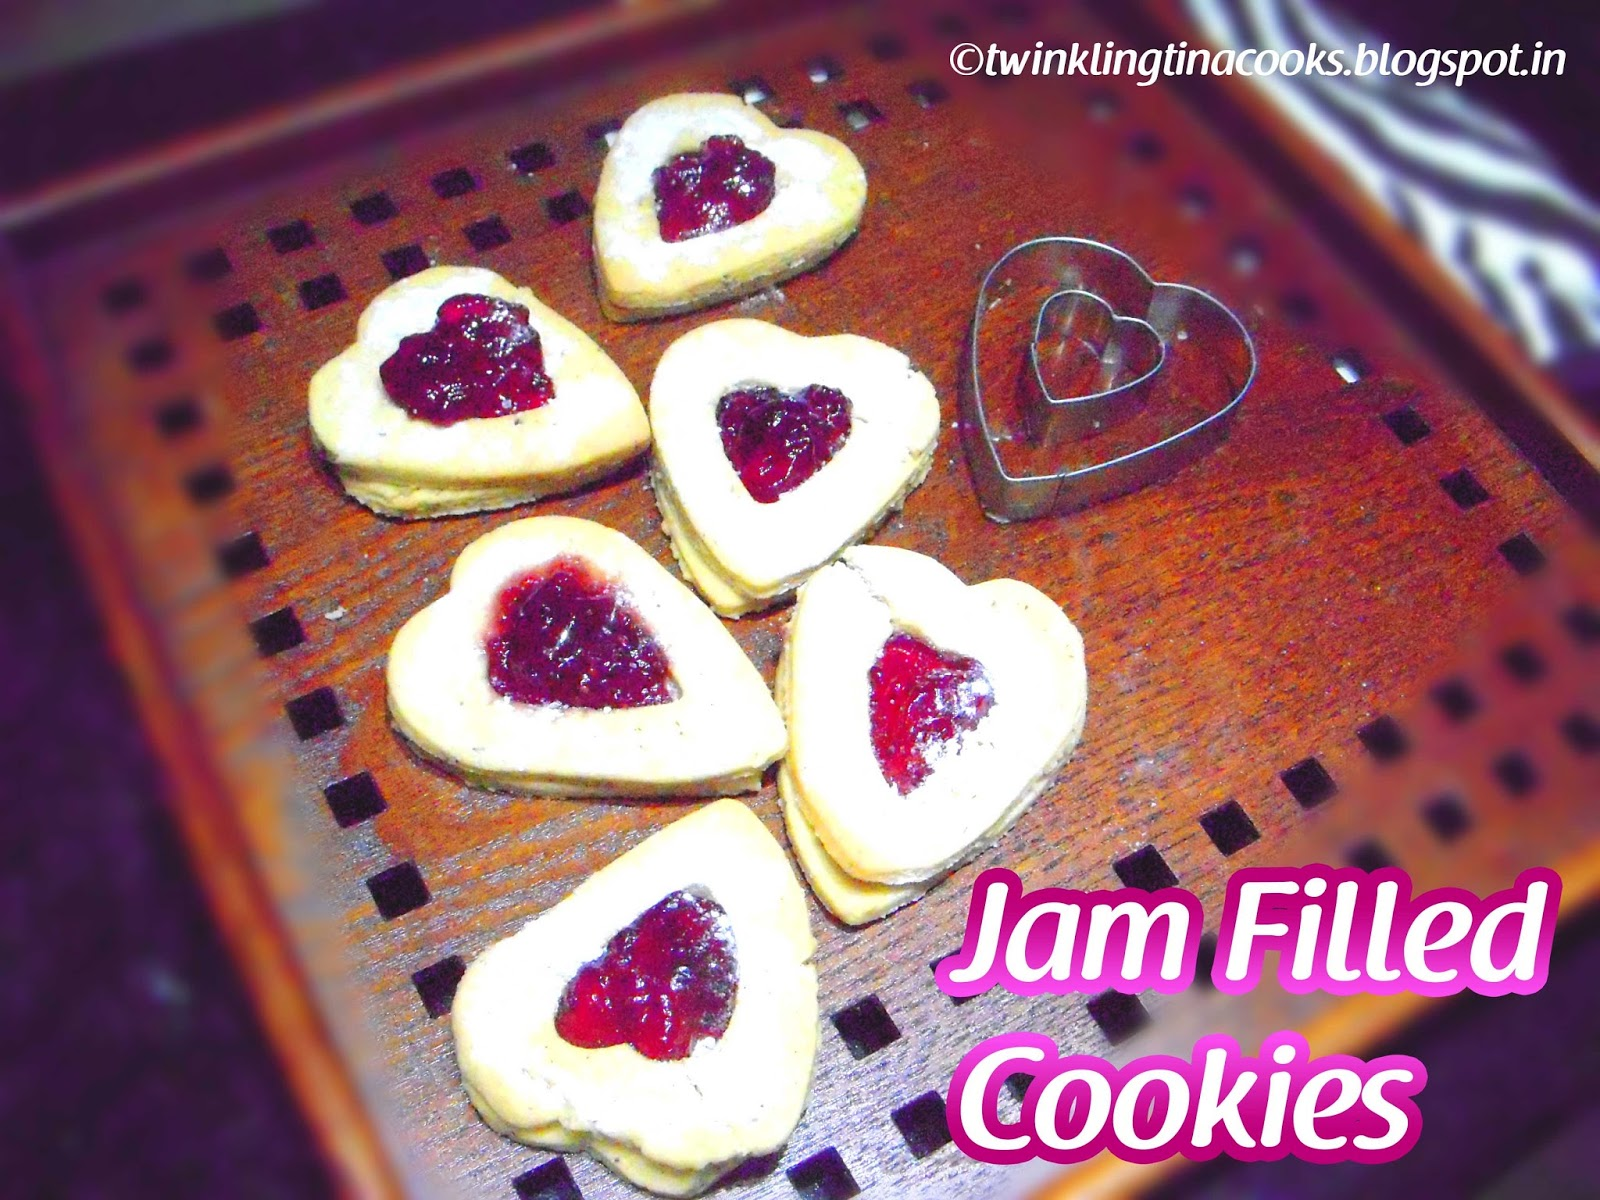 Jam-filled-cookies-how-to-make-jam-filled-cookies